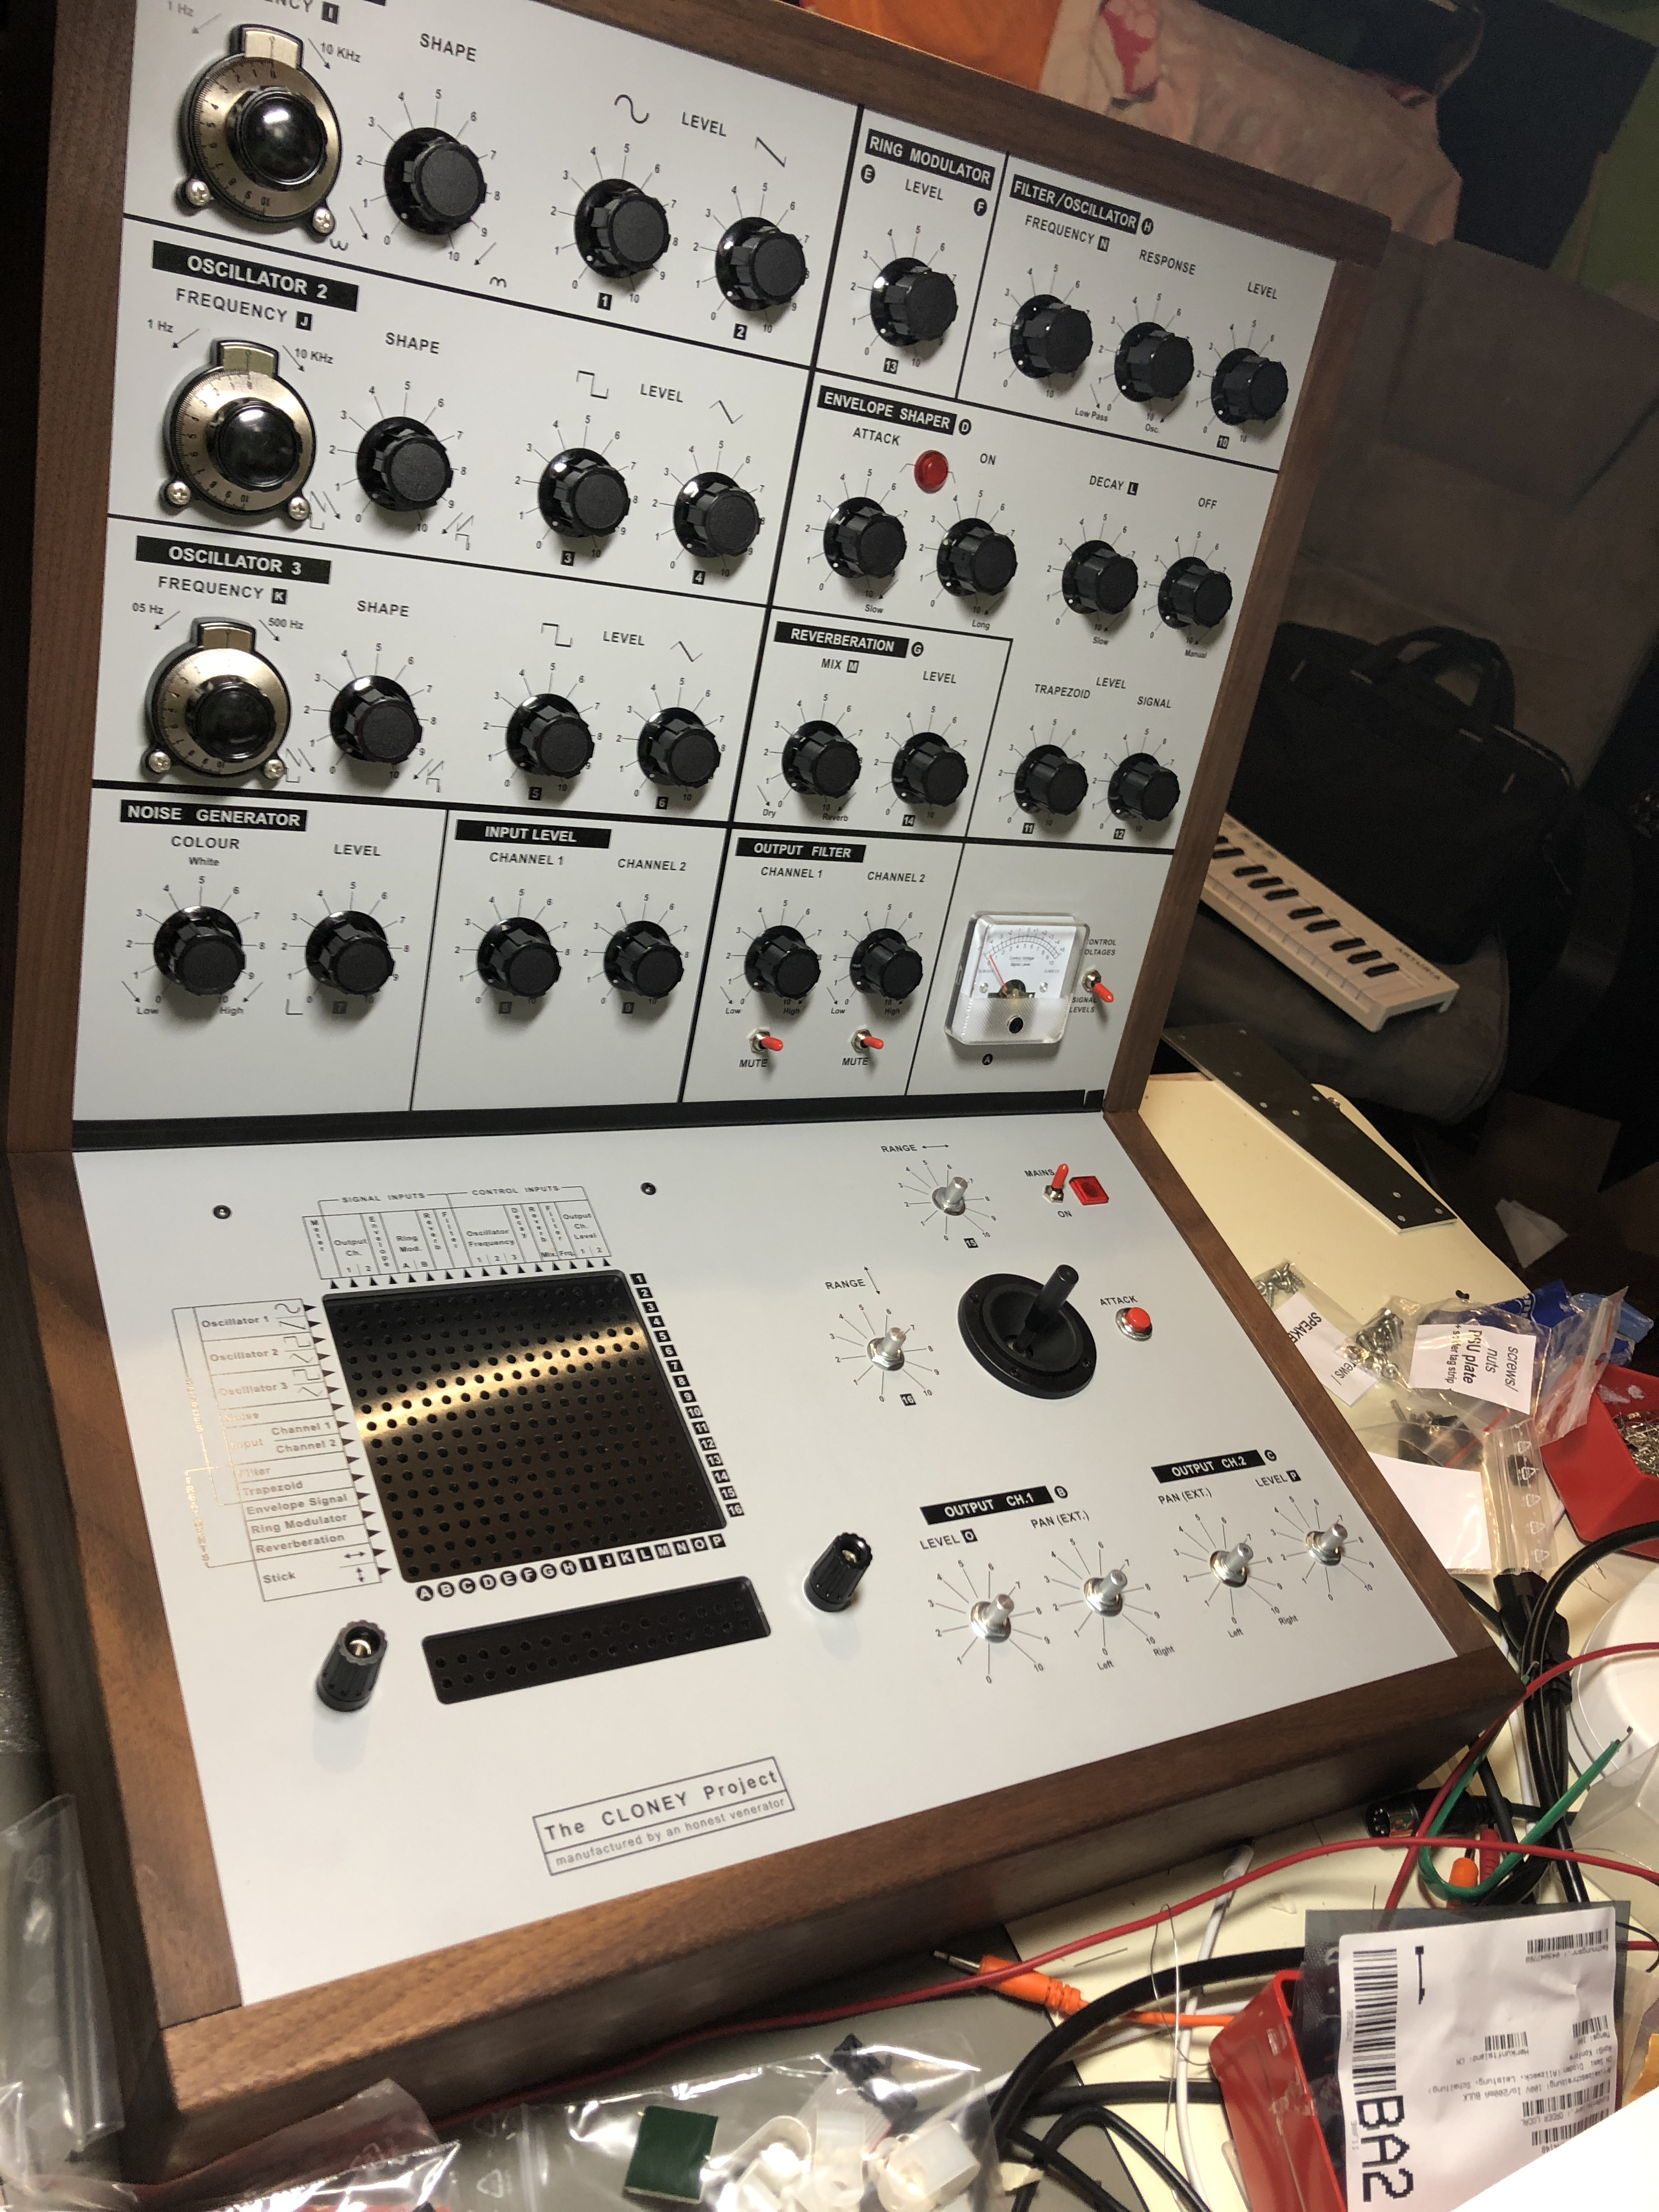 The Cloney Project Vcs3 Clone Diy Synth Other We Love Electronic Projects Simple Build Notes